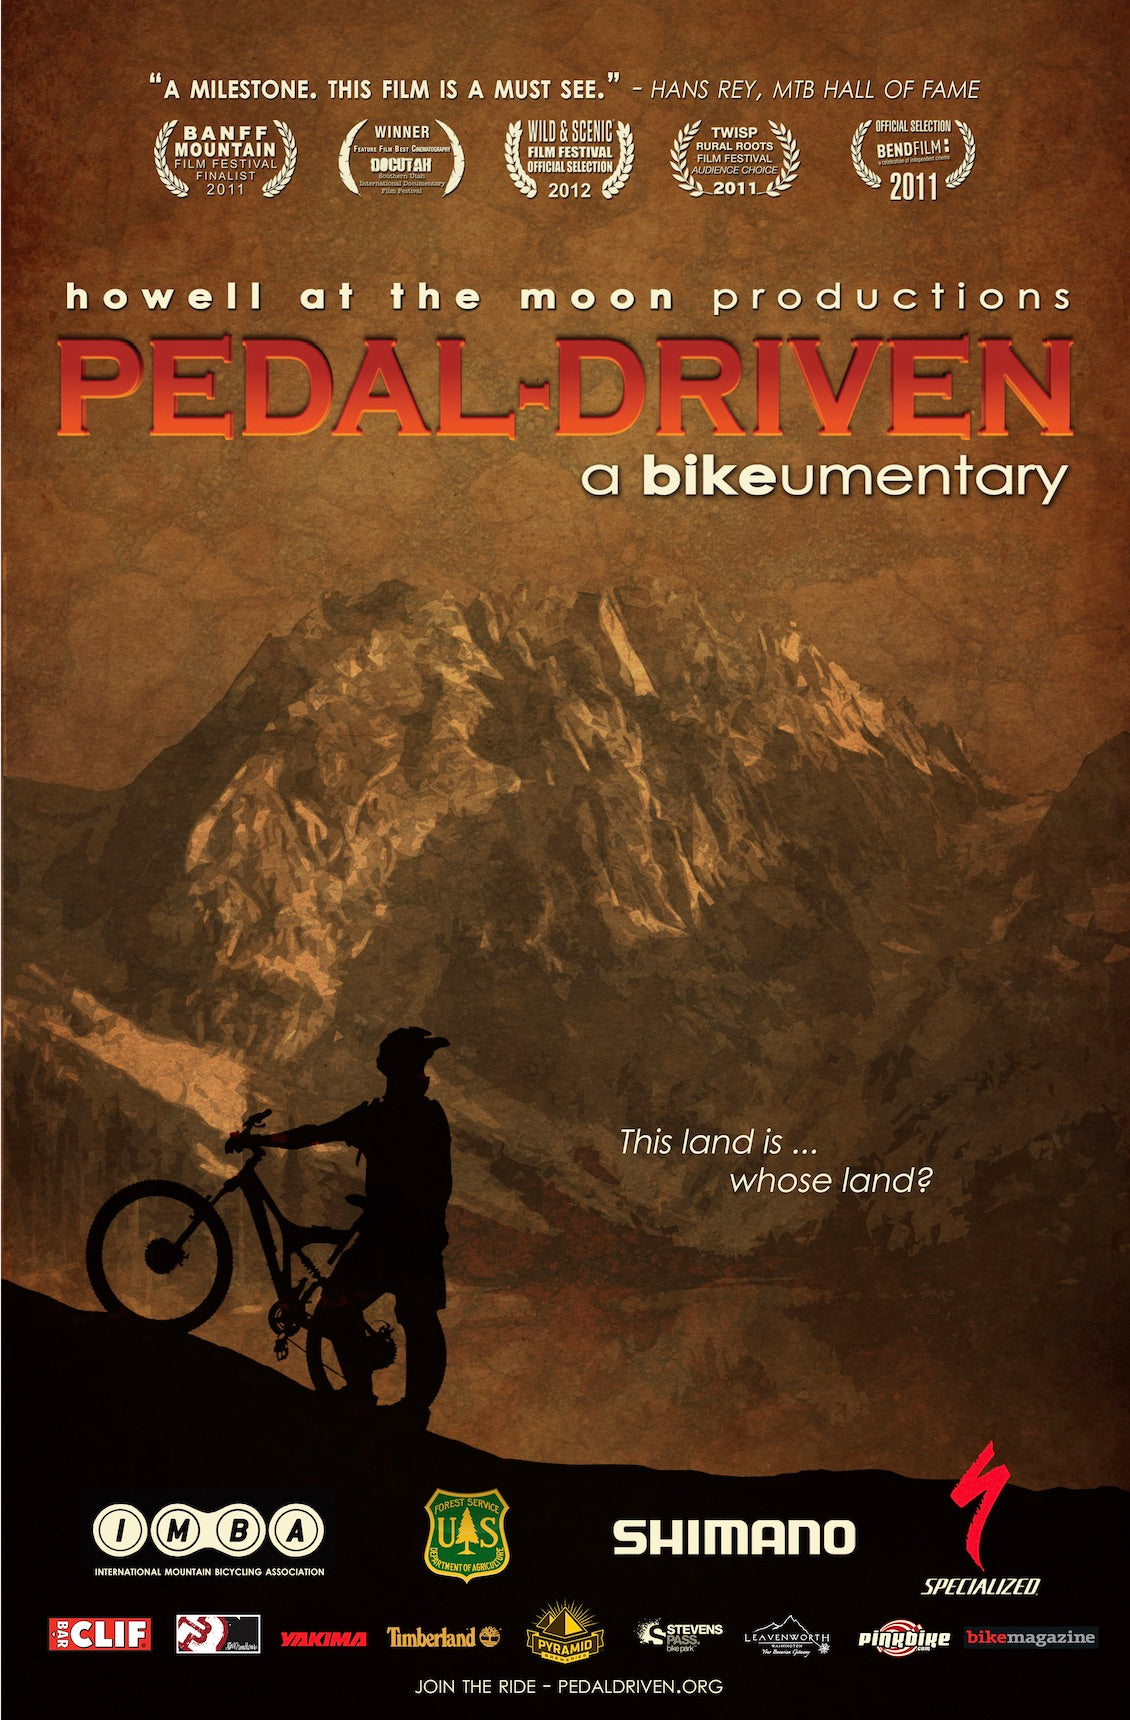 Pedal-Driven: A bike-umentary